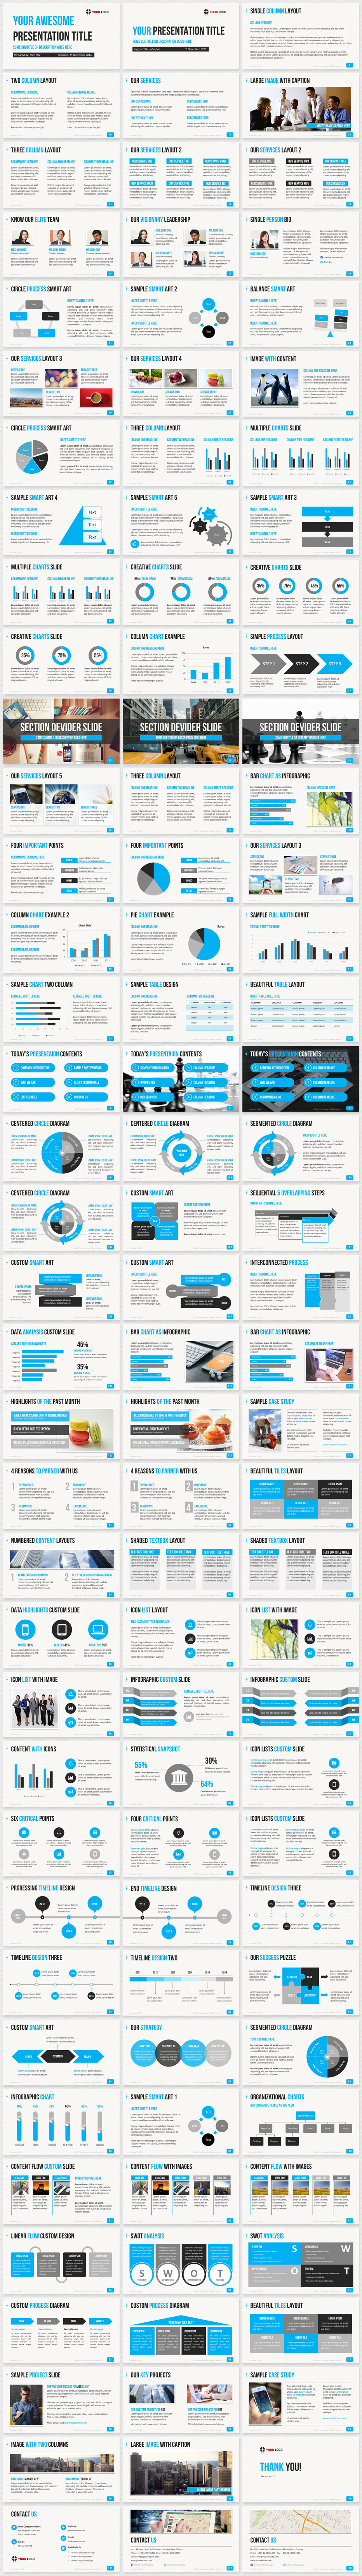 Professional business powerpoint templates with 17 high quality professional business powerpoint templates with 17 high quality template slide layouts 6 color themes to create a smart powerpoint presentation fast flashek Gallery